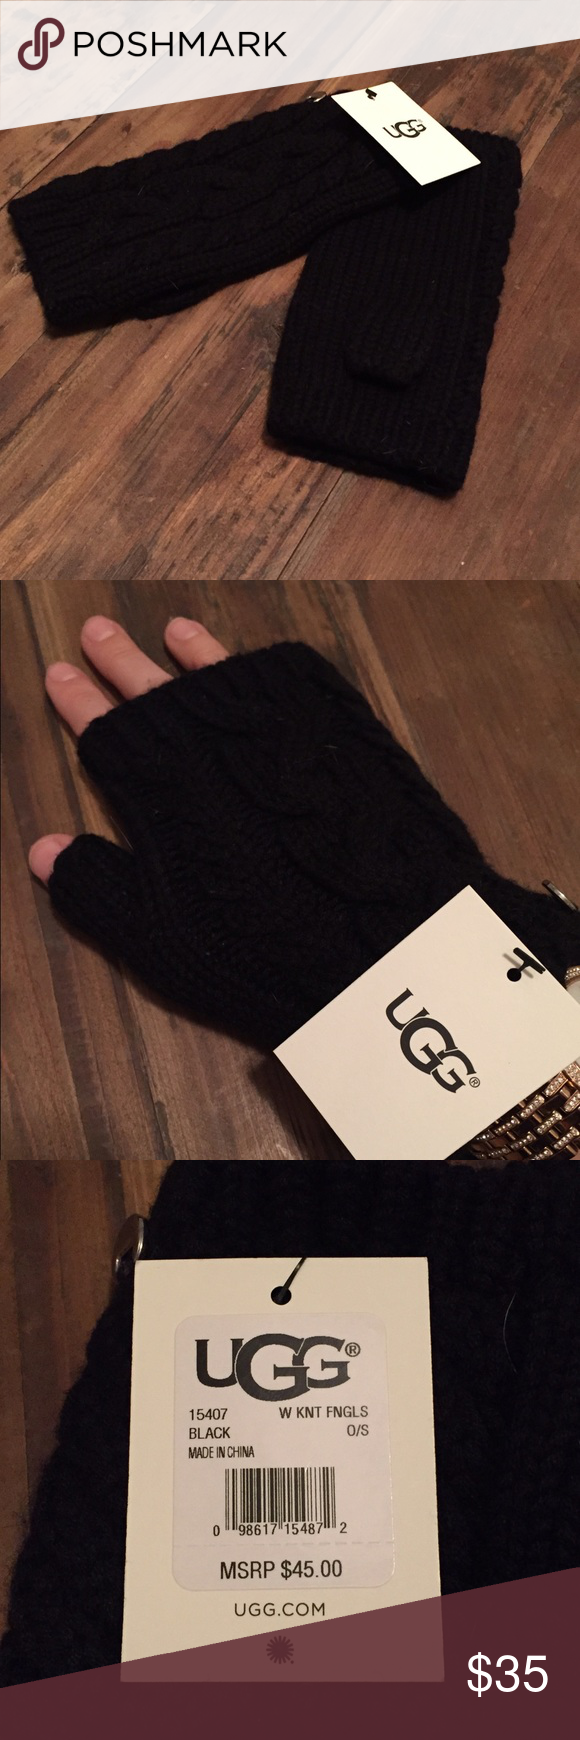 Nwt Ugg Knit Gloves Brand New With Tags Ugg Knot Gloves These